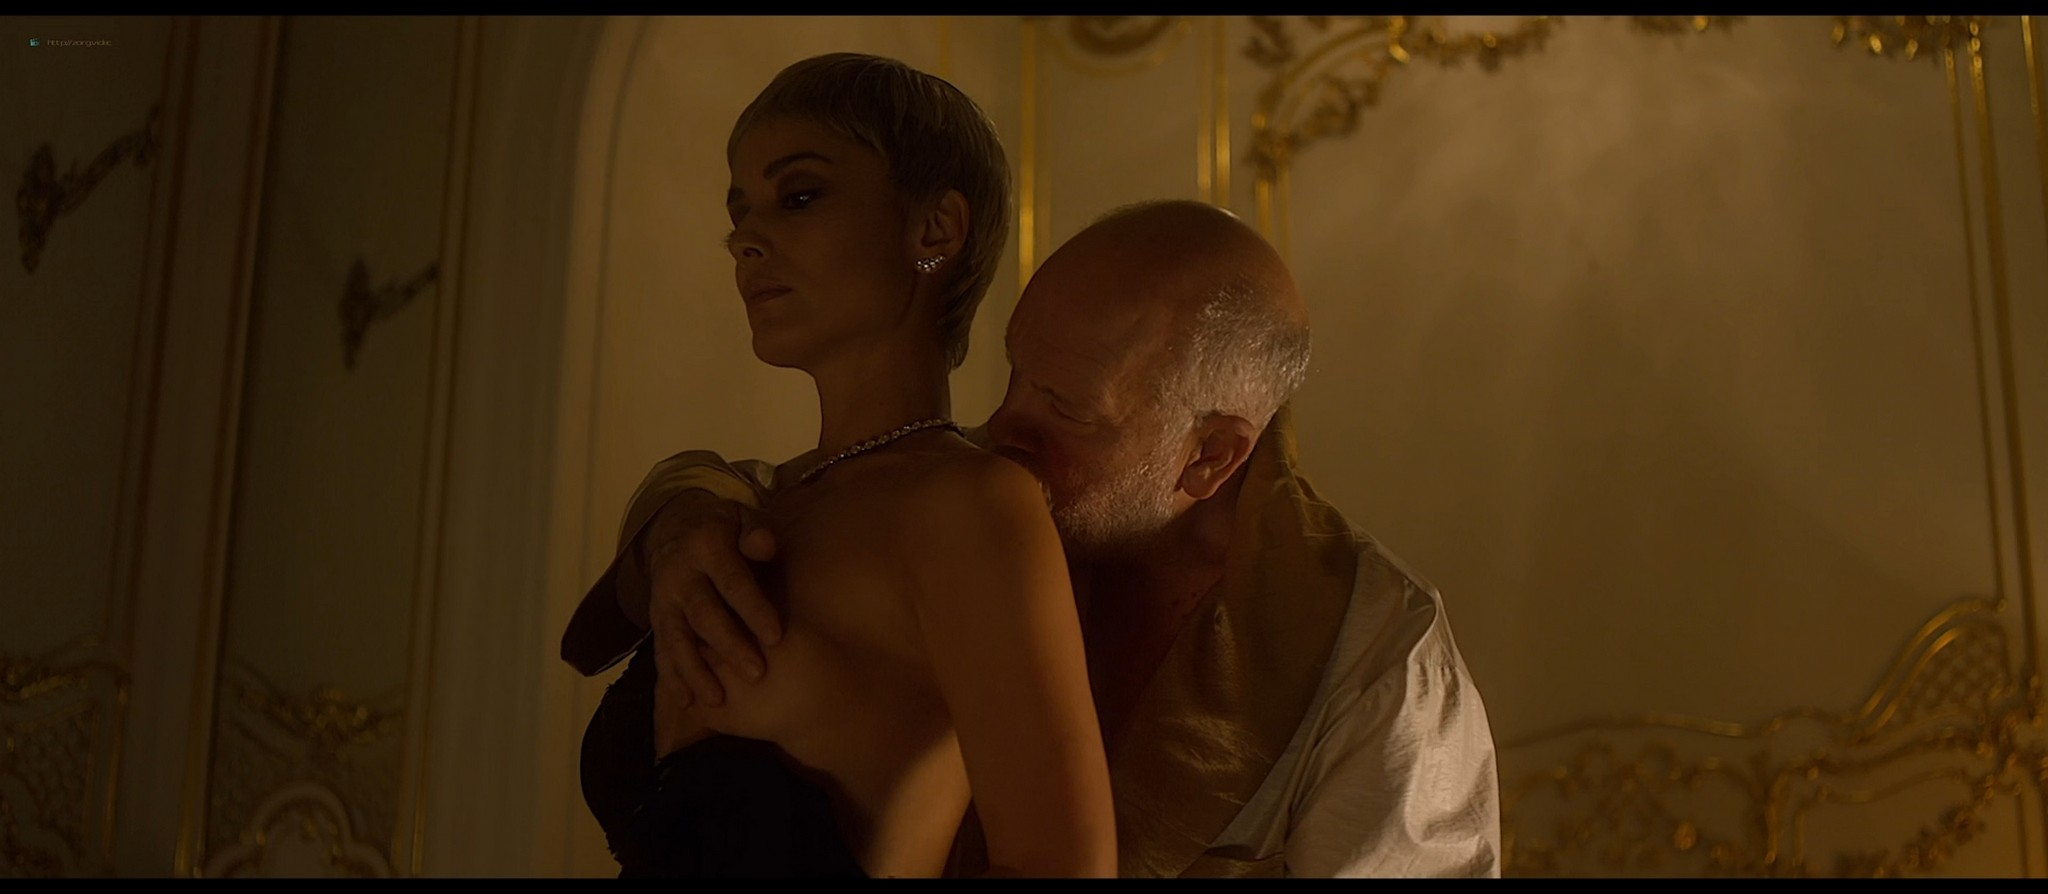 Bérénice Marlohe nude Jaime Ray Newman sexy Owee Rae butt naked - Valley of the Gods (2019) HD 1080p BluRay (13)